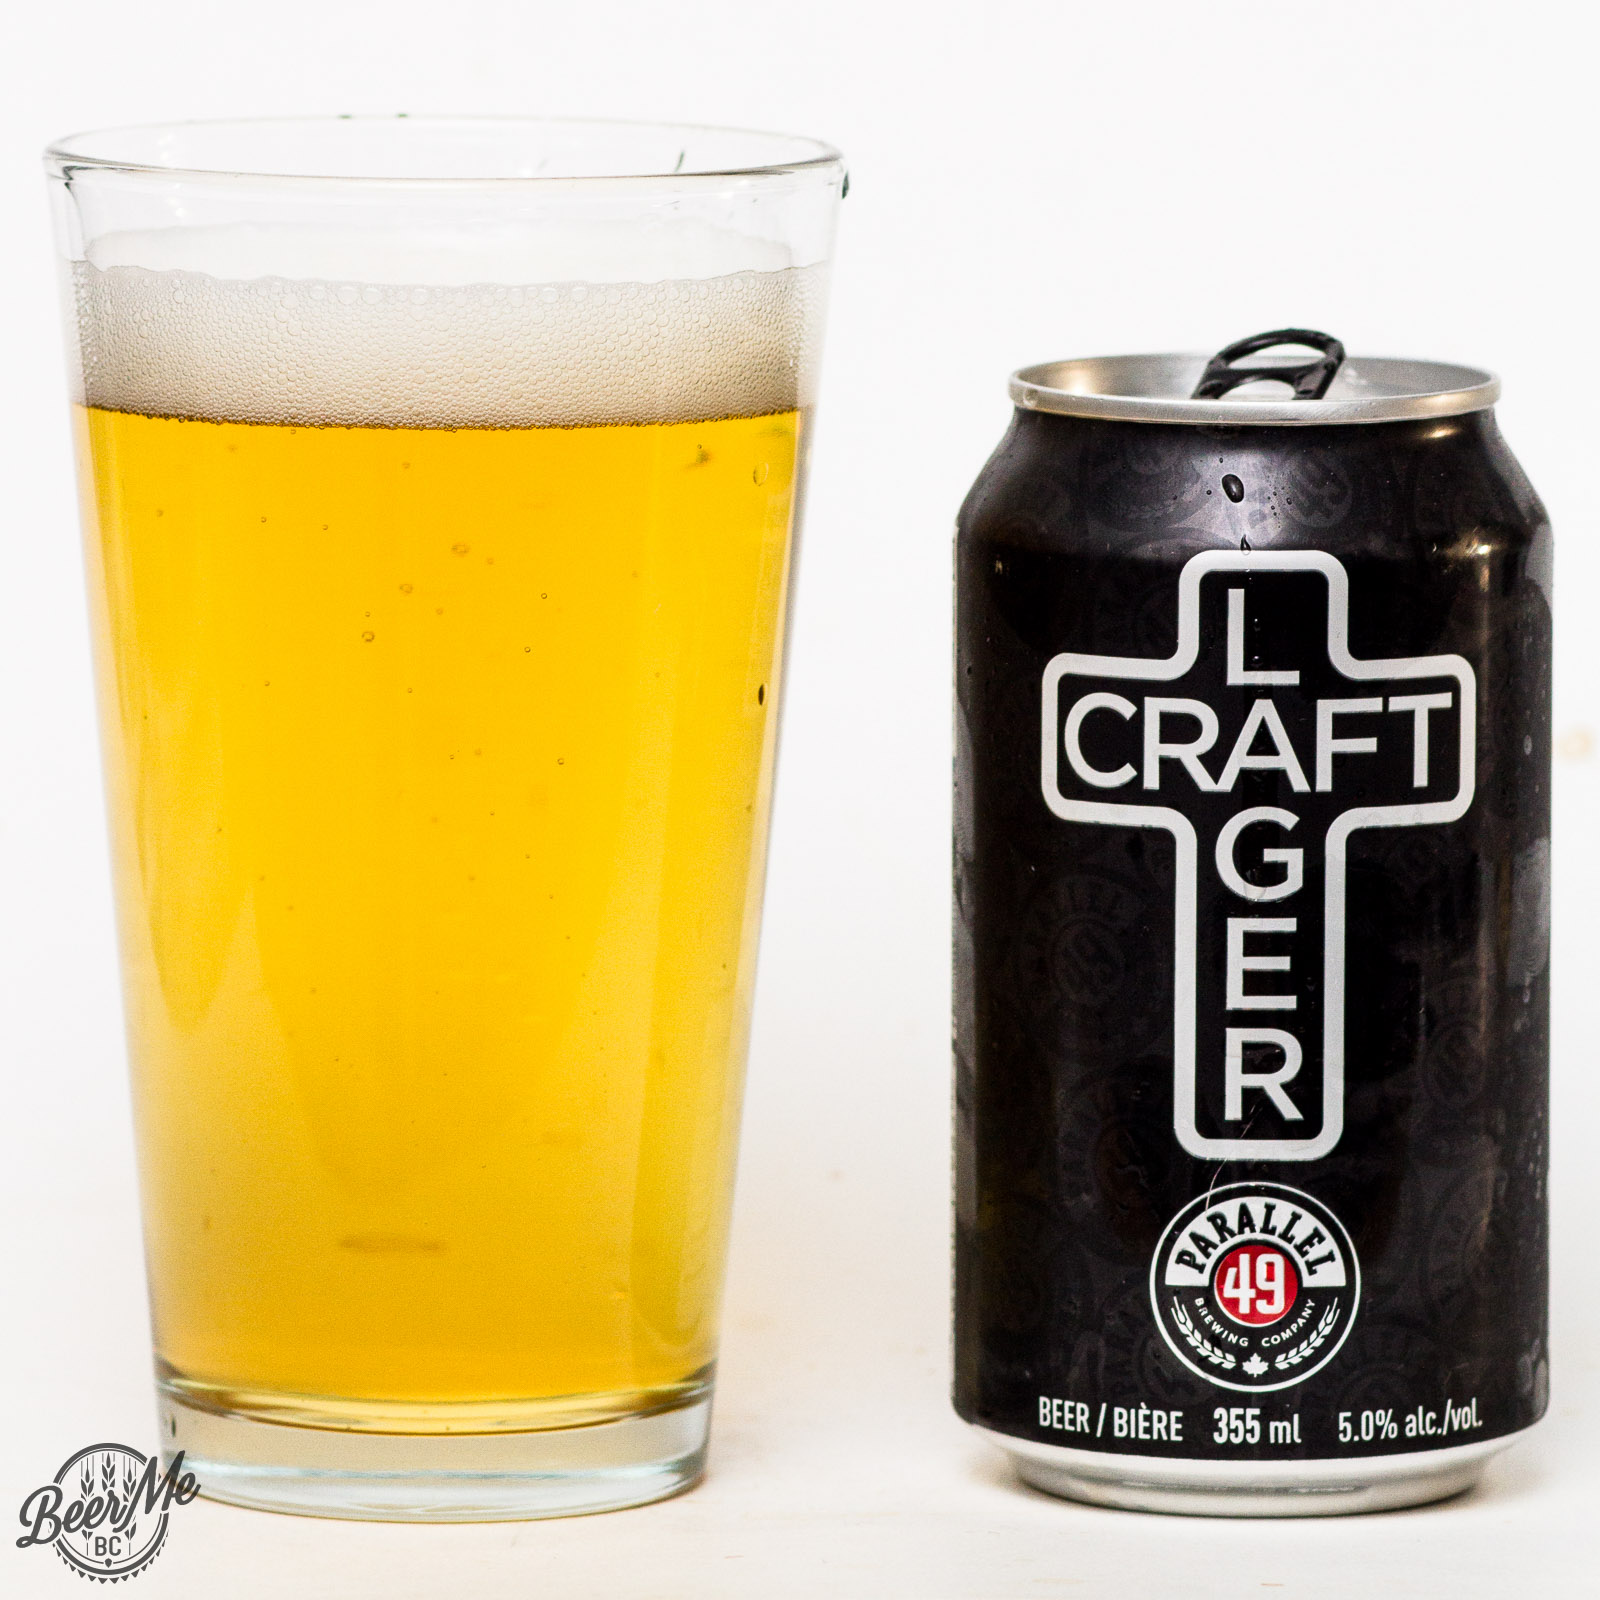 CRAFT BEER LAGER